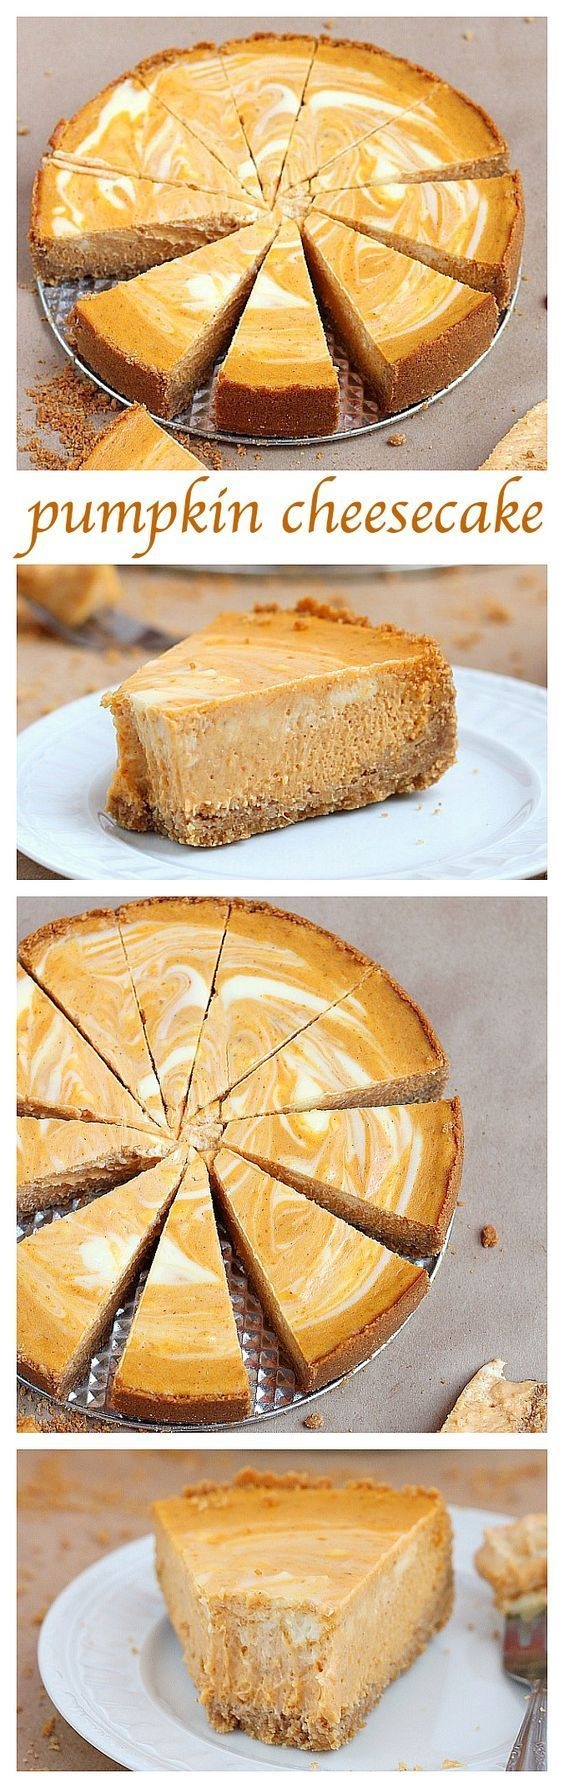 Pumpkin swirl cheese cake is so yummy! It's not super pumpkinie flavored, it just the right amount of flavor. I would love to make this one day.